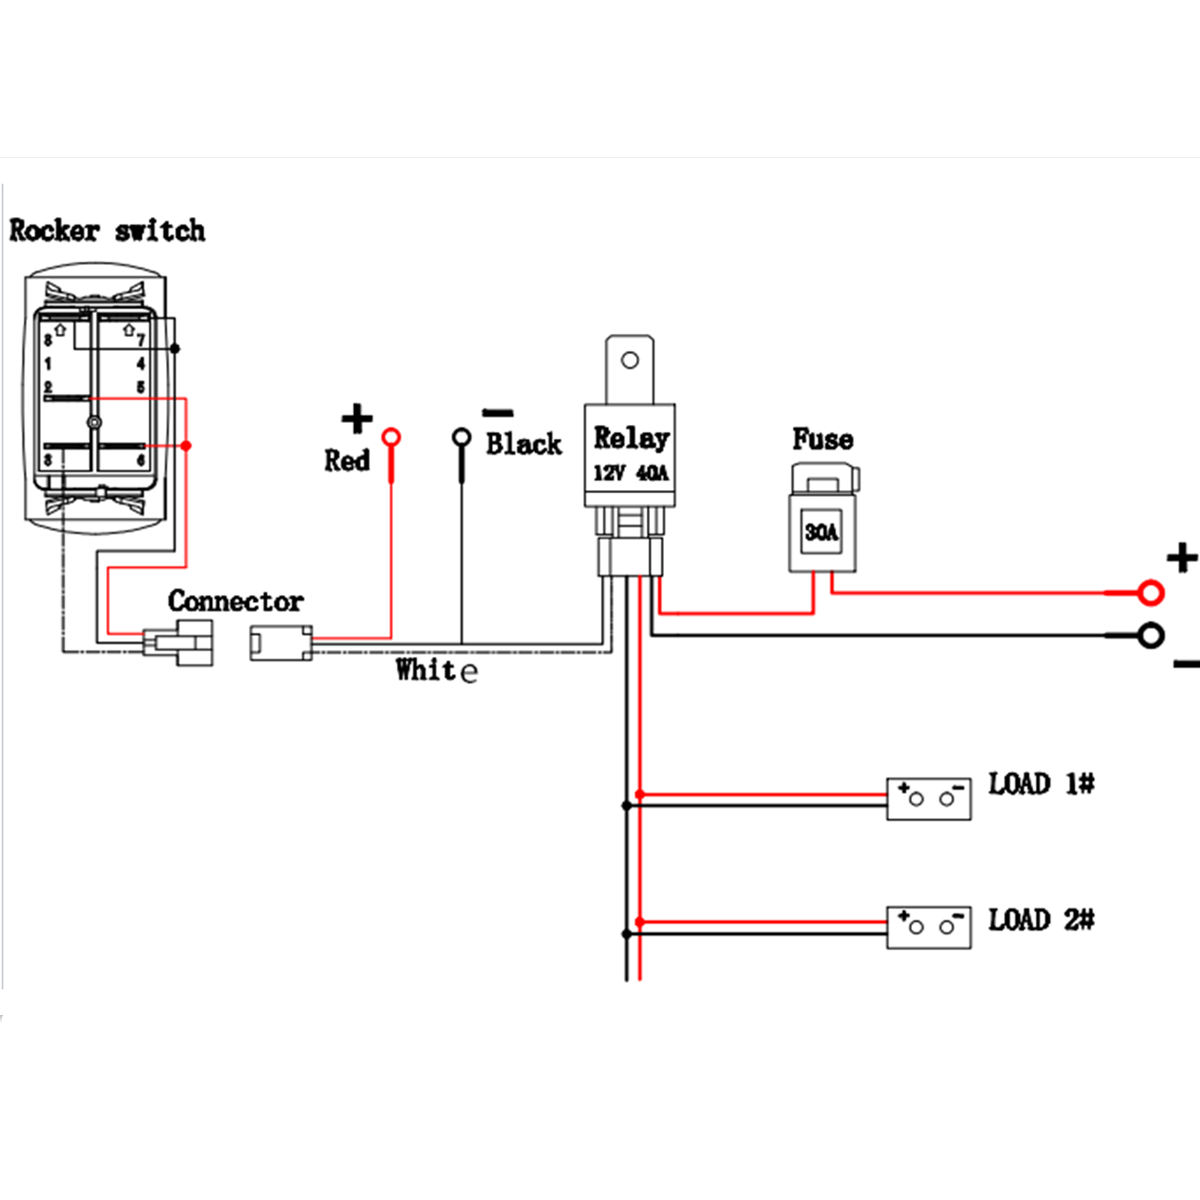 Ac Light Wiring Diagram - Do you want to download wiring ... on